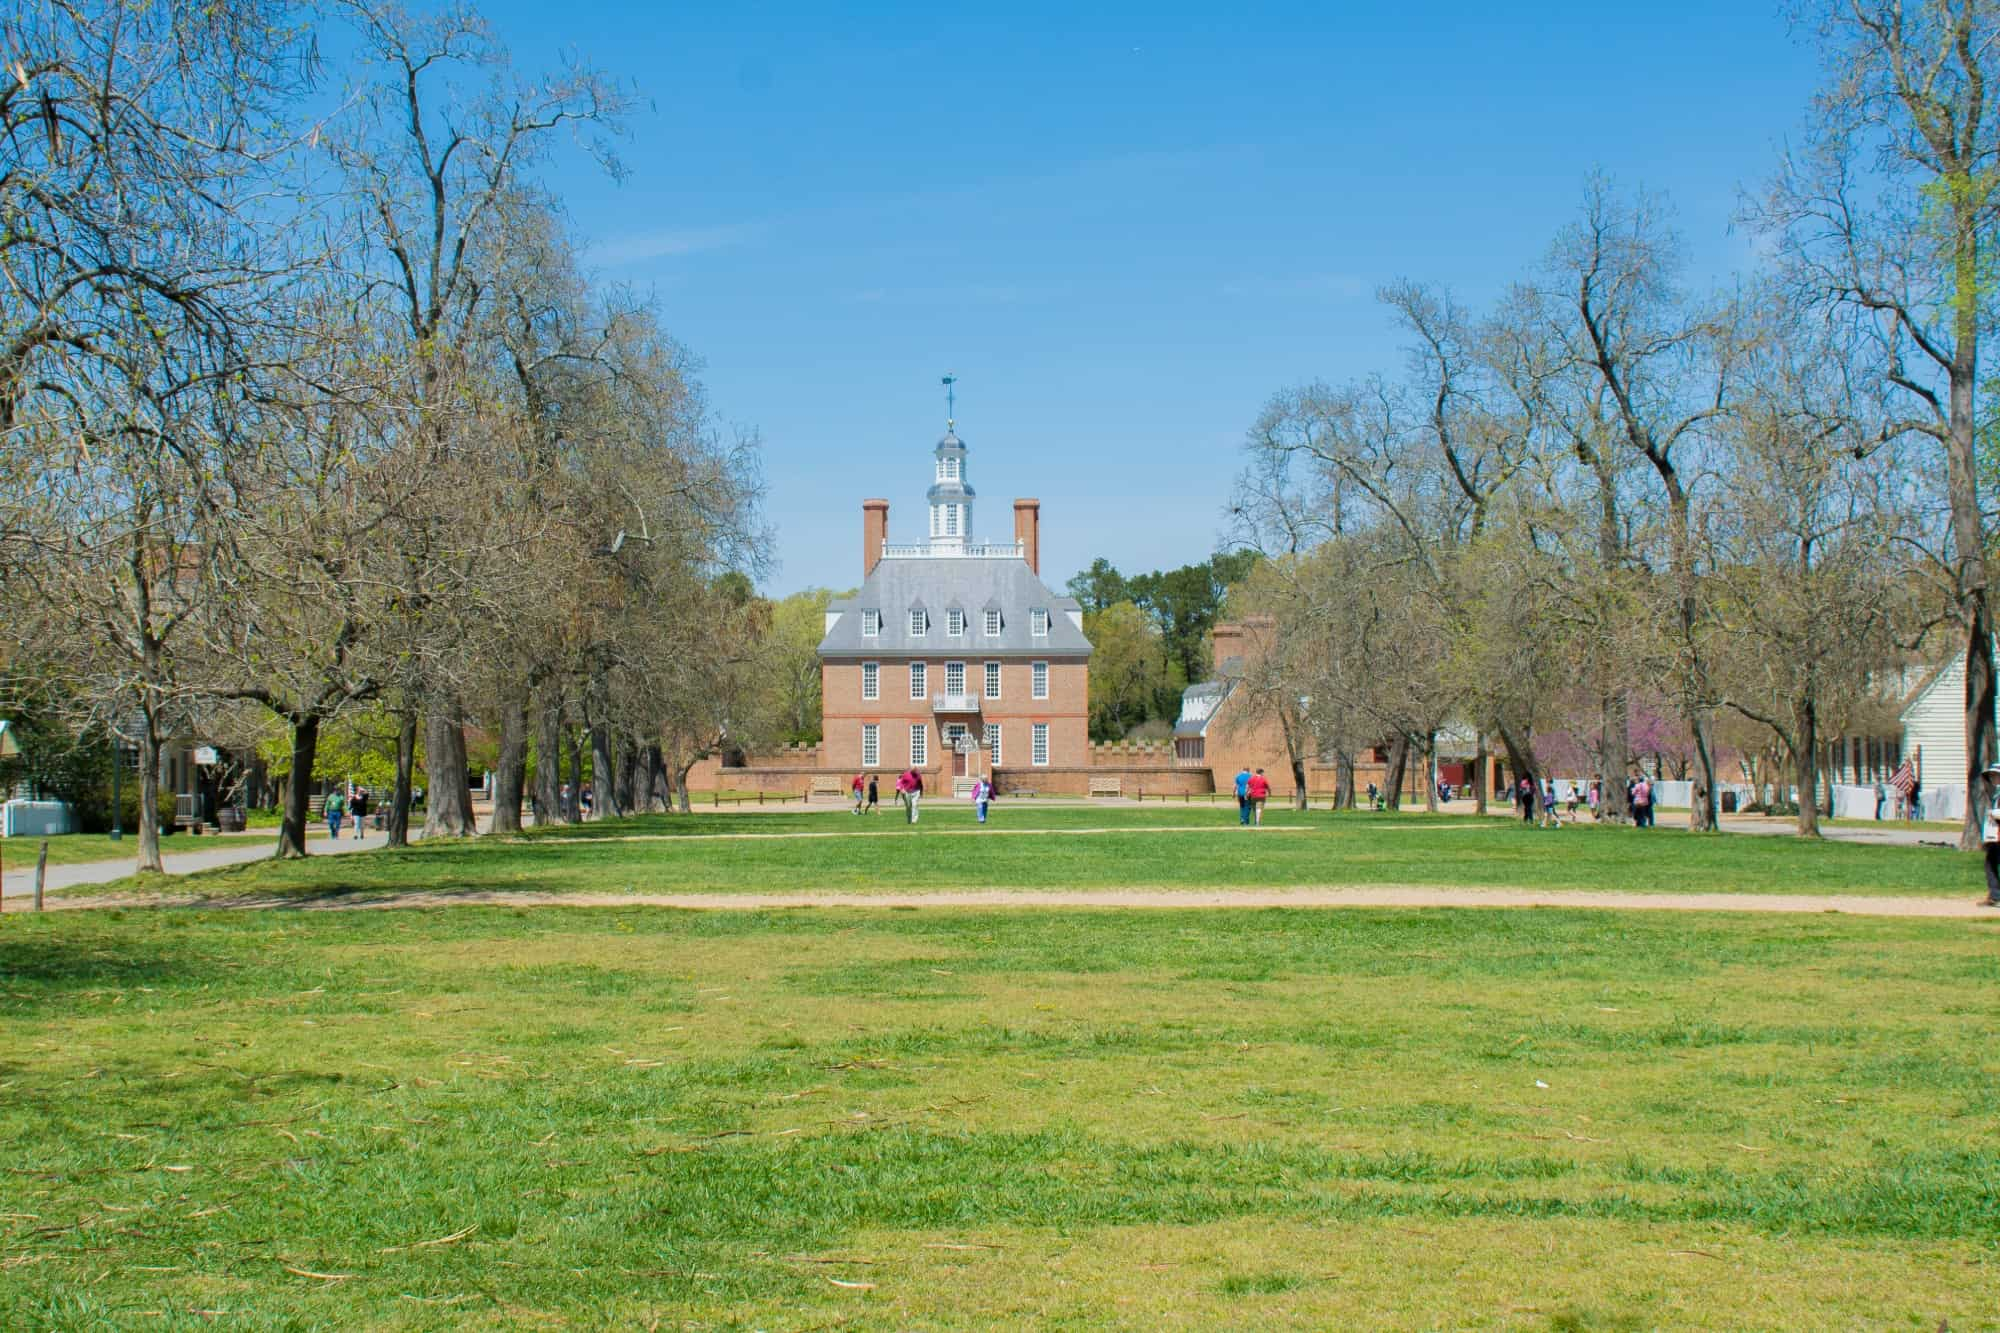 A Historic Williamsburg, VA Family Vacation